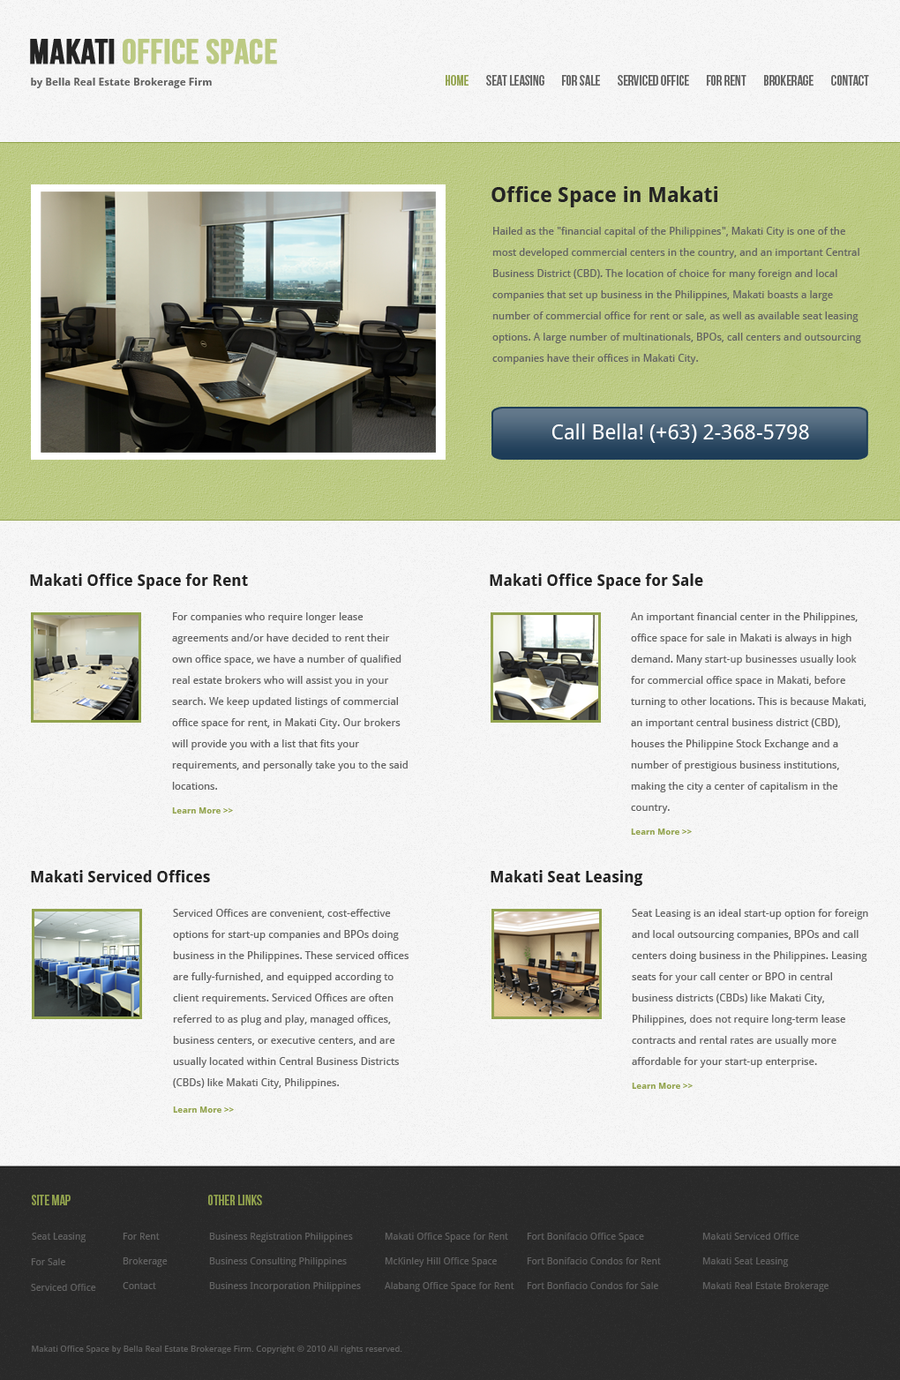 Makati office space redesign by hellkite527 on deviantart for Redesign office space